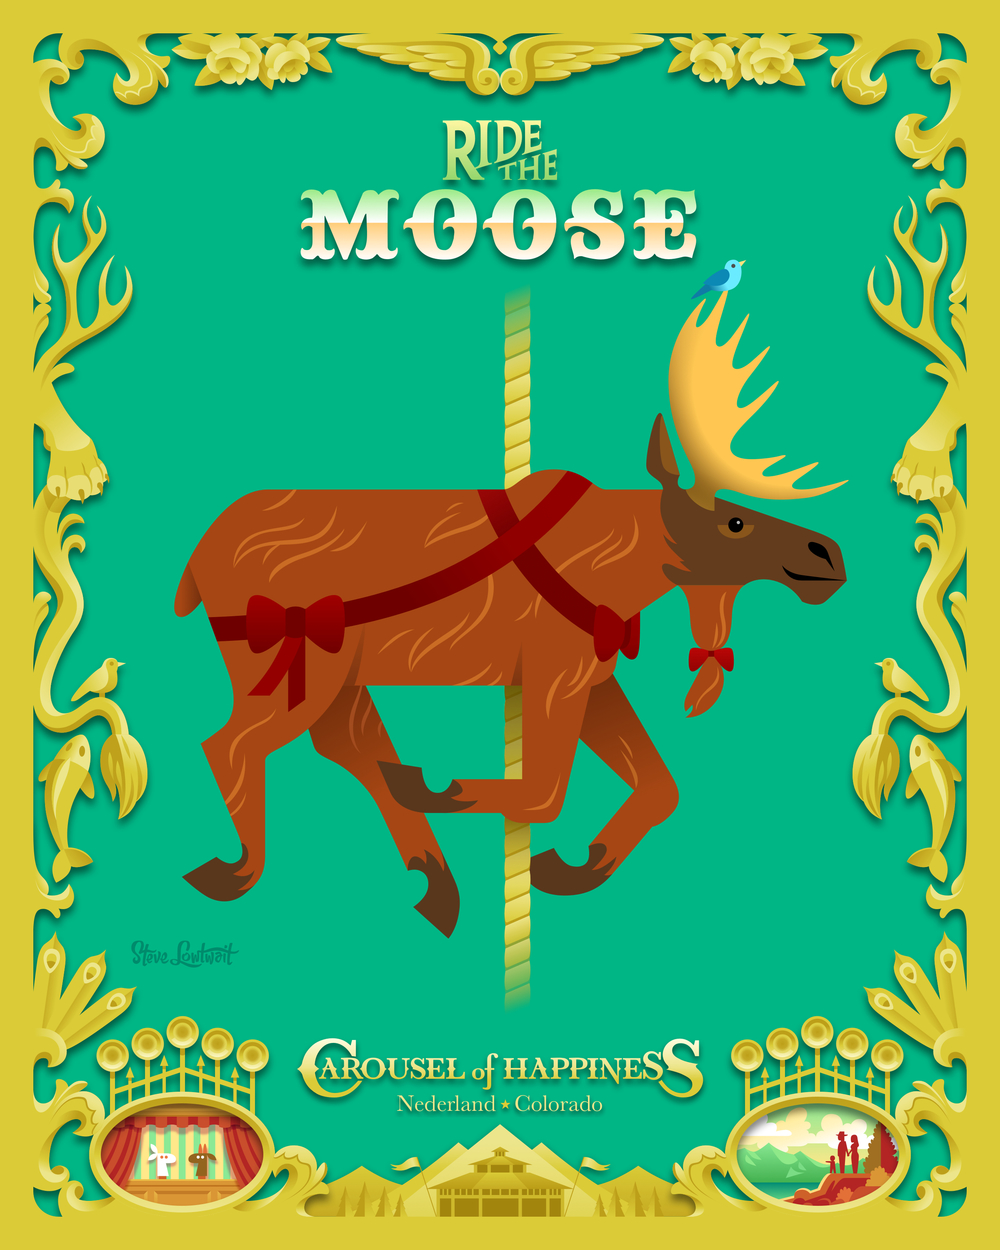 Ride the Moose